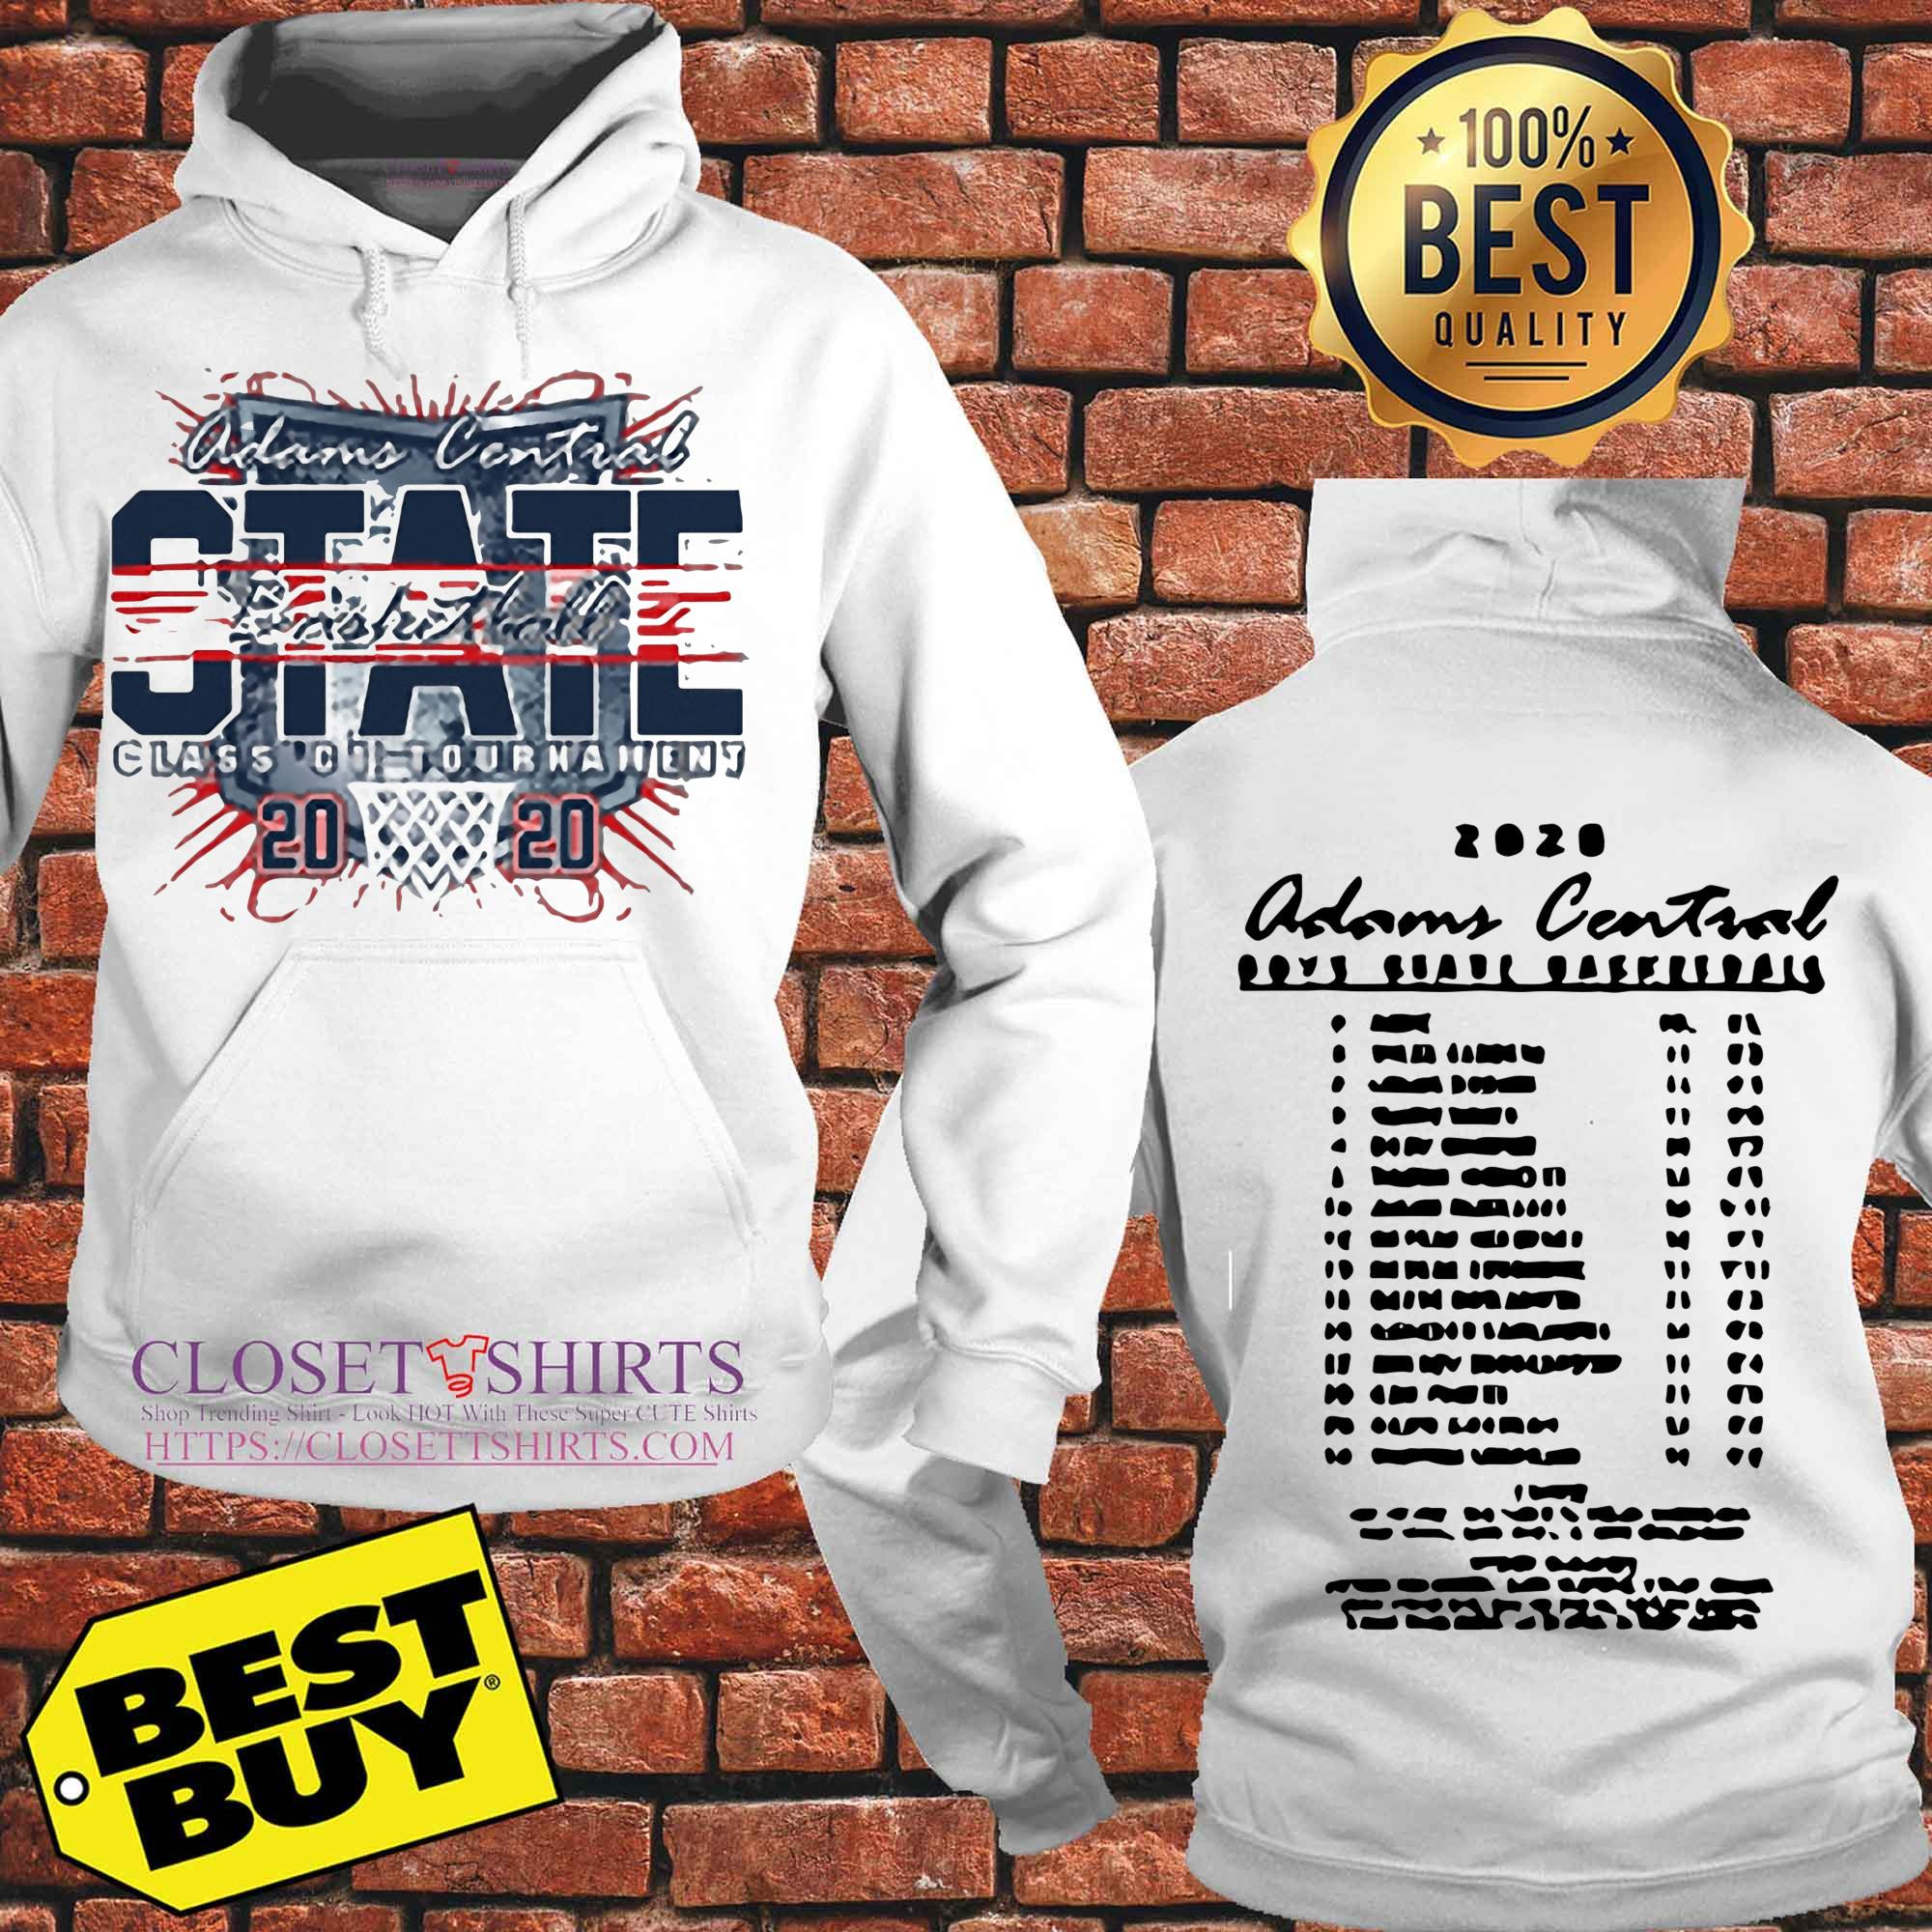 Adams Central Boys State Basketball 2020 Sport Grey Hoodies